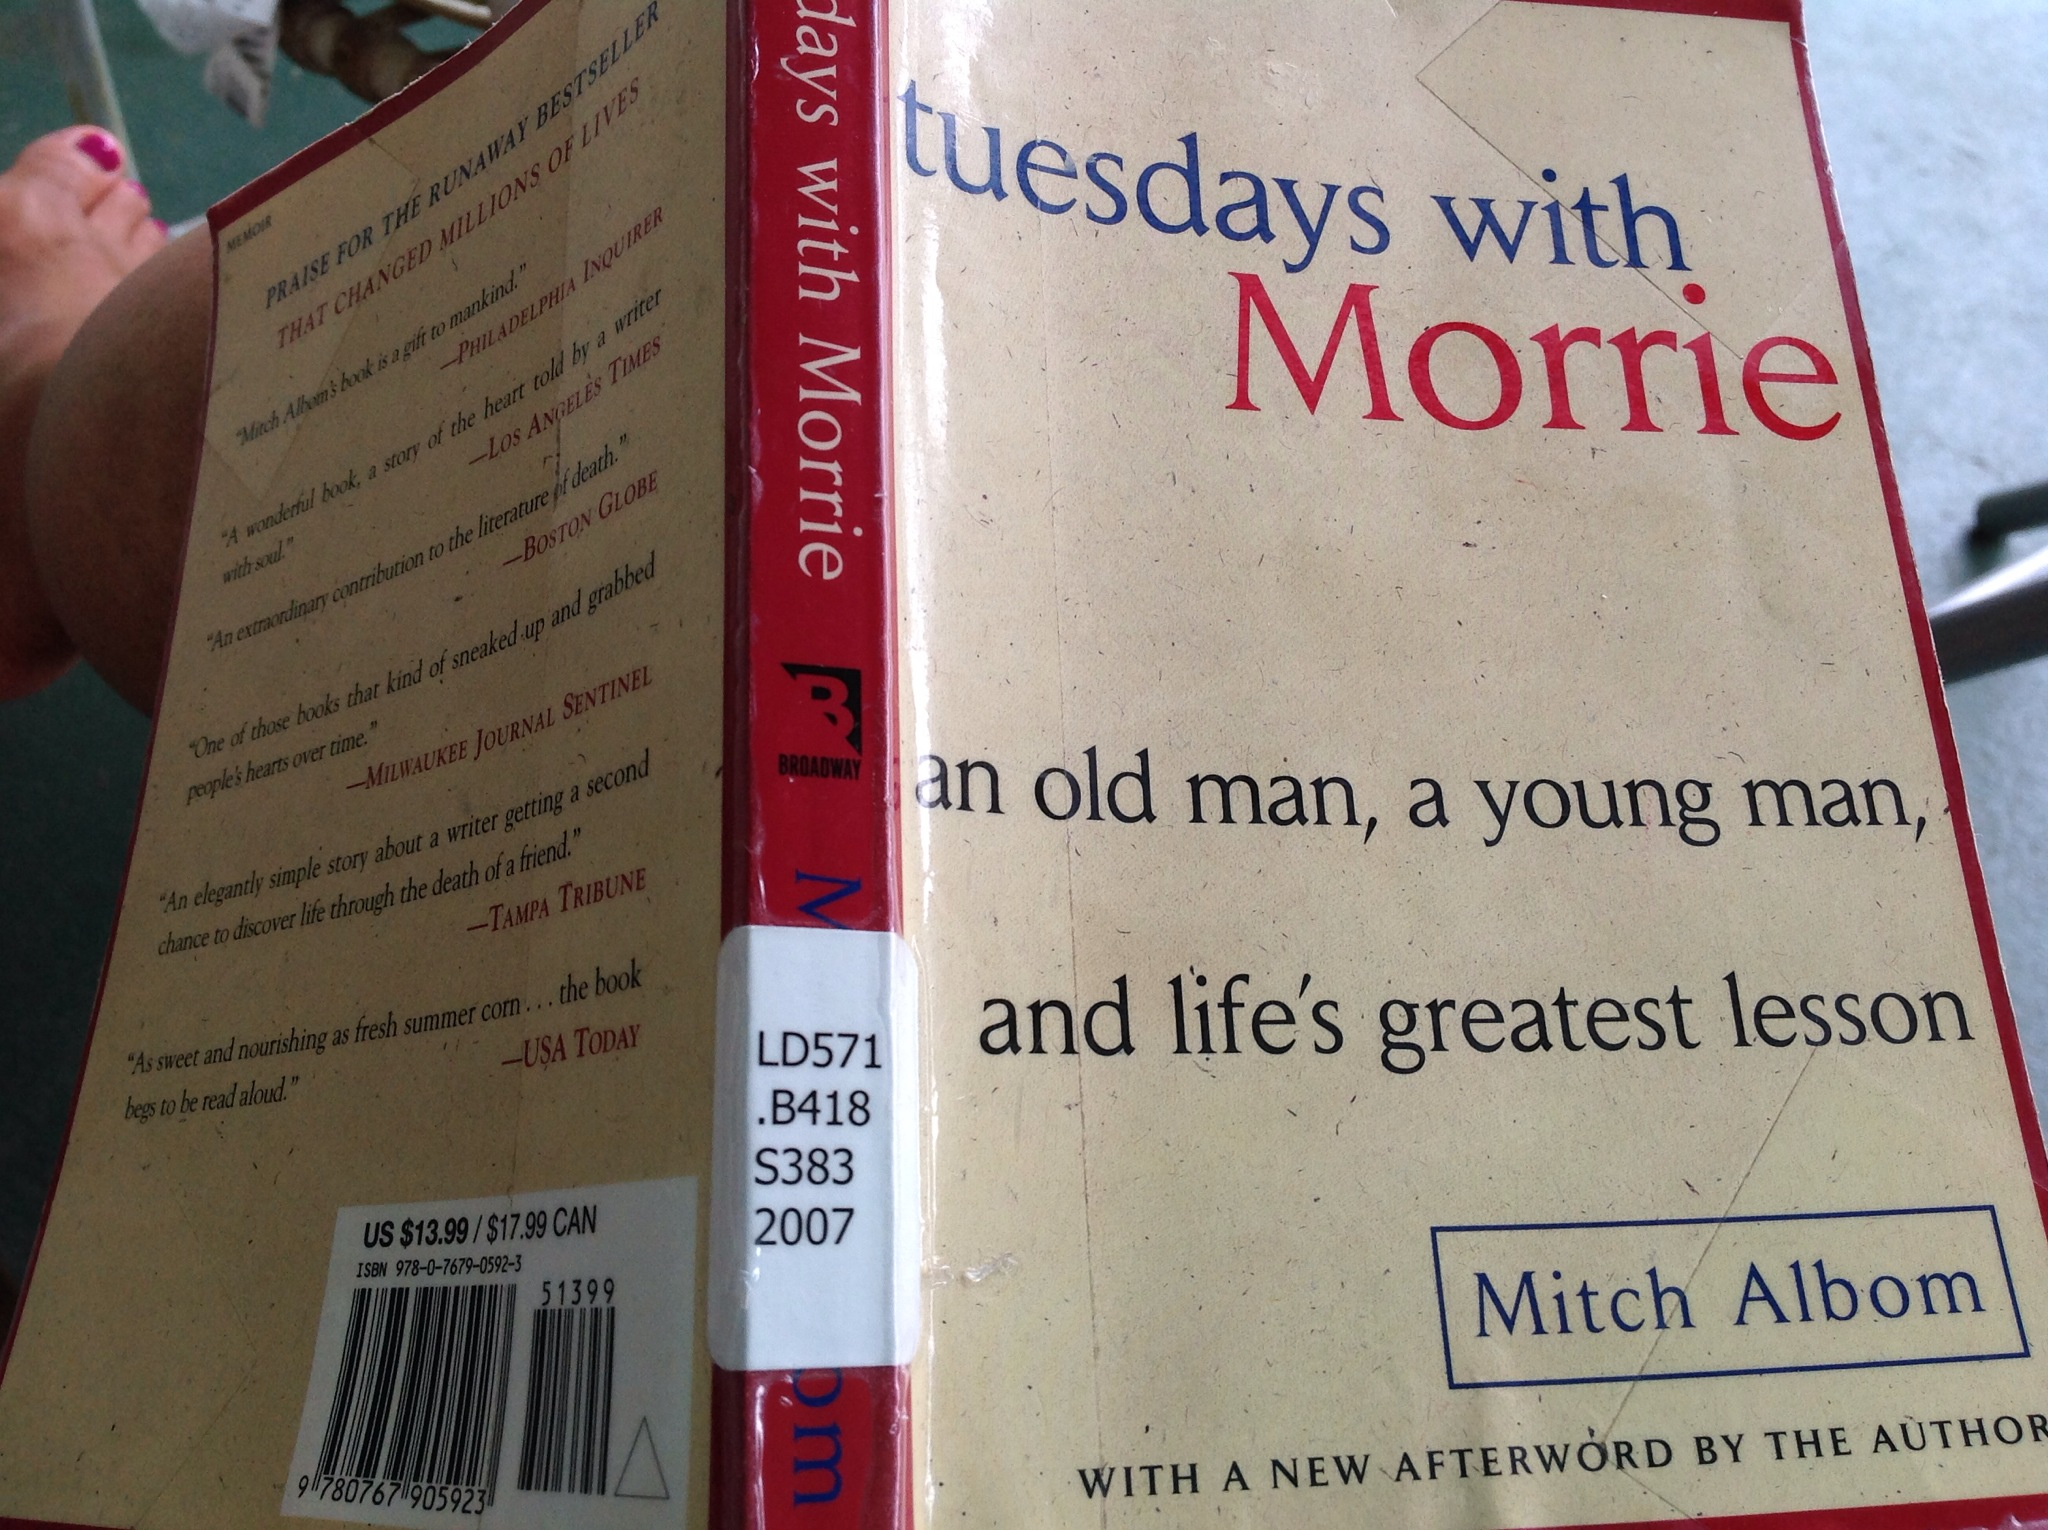 tuesdays with morrie research papers Morrie starts to speak about one particular letter it was from a lady who lost a parent when she was an adolescent and how she attended a group, which provided therapy for people who went through the same situation.